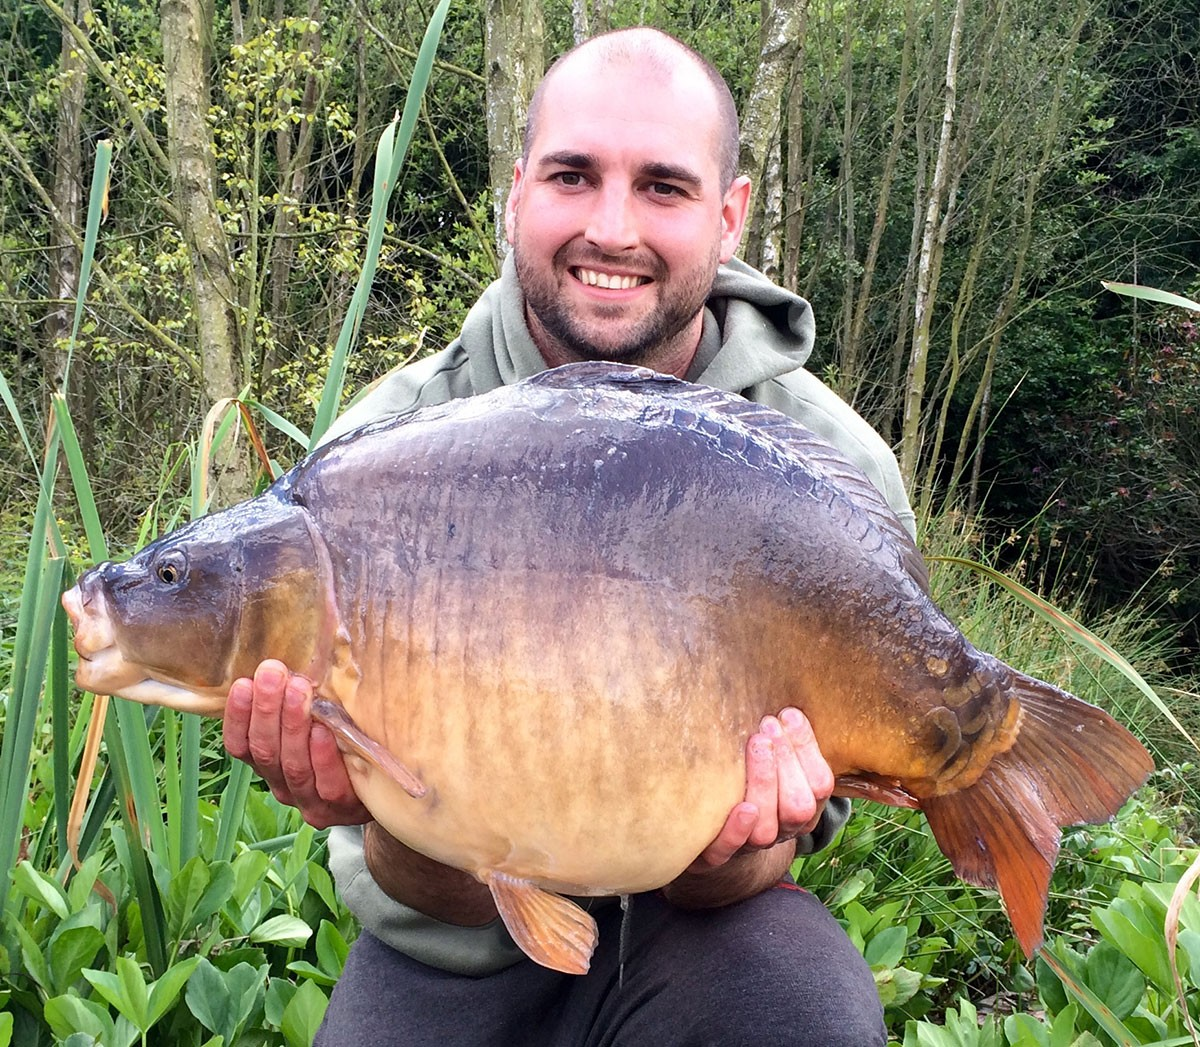 20-08 caught on Boilies